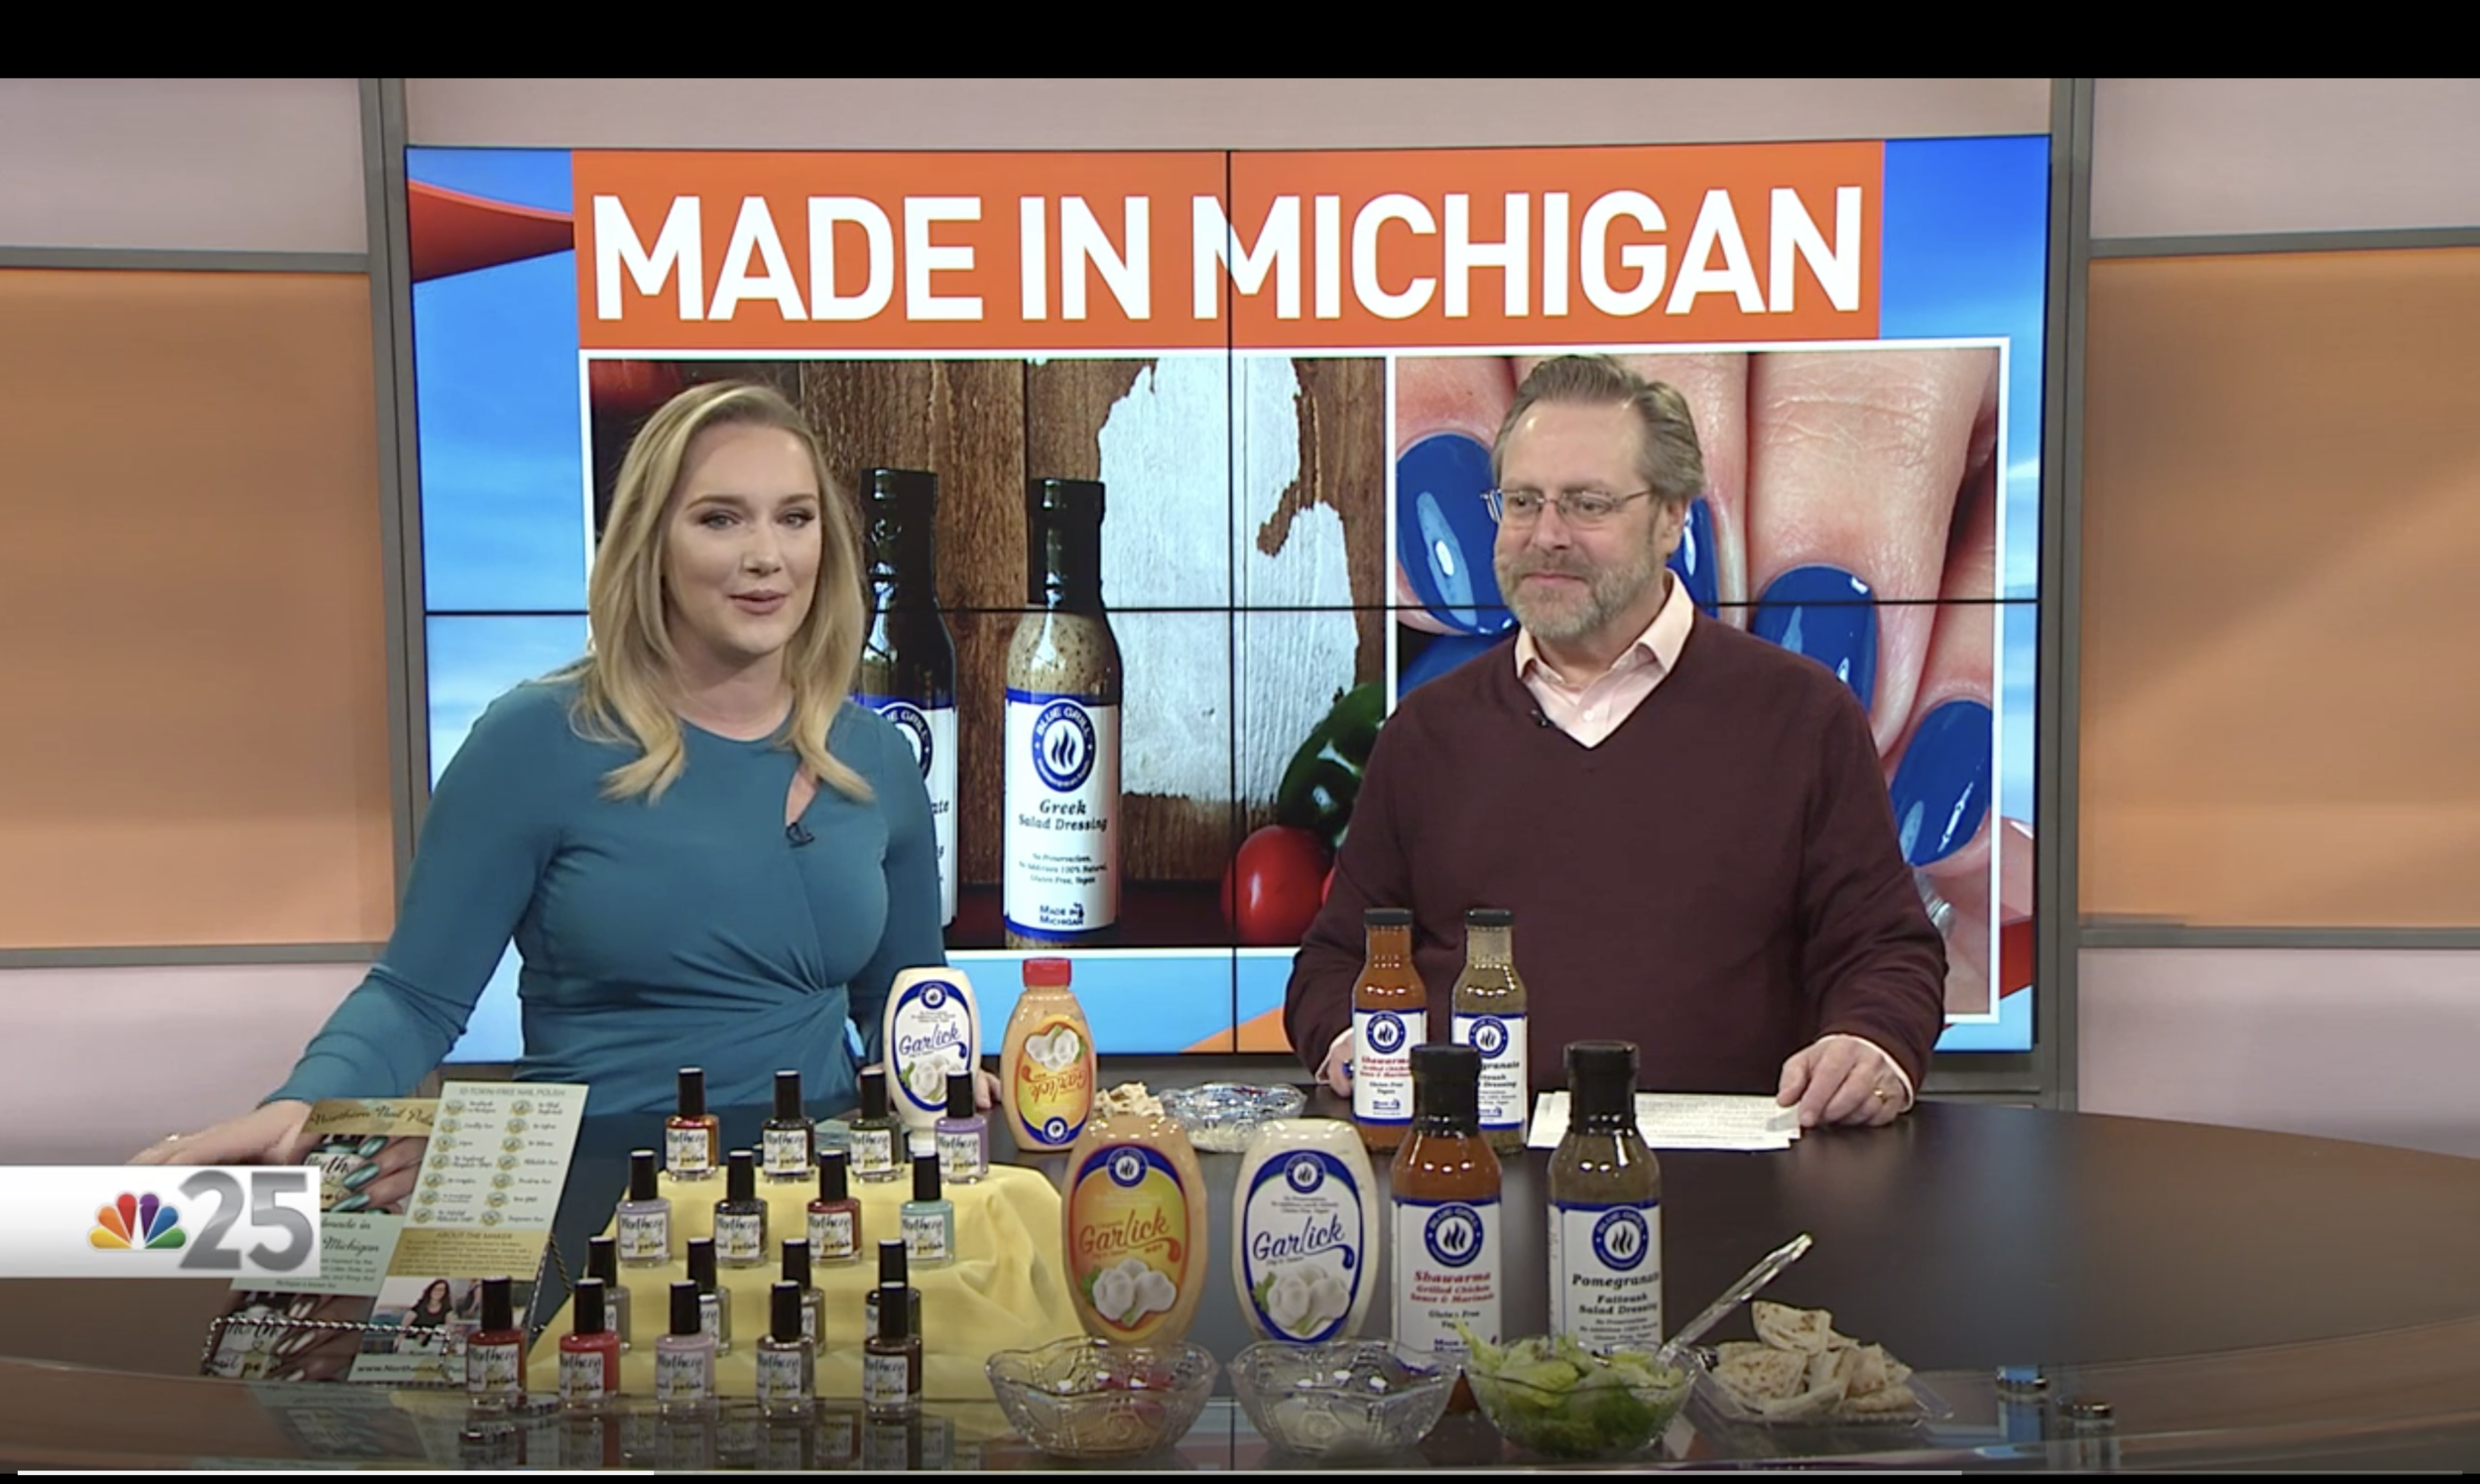 https://nbc25news.com/news/nbc25-today/made-in-michigan-shop-local